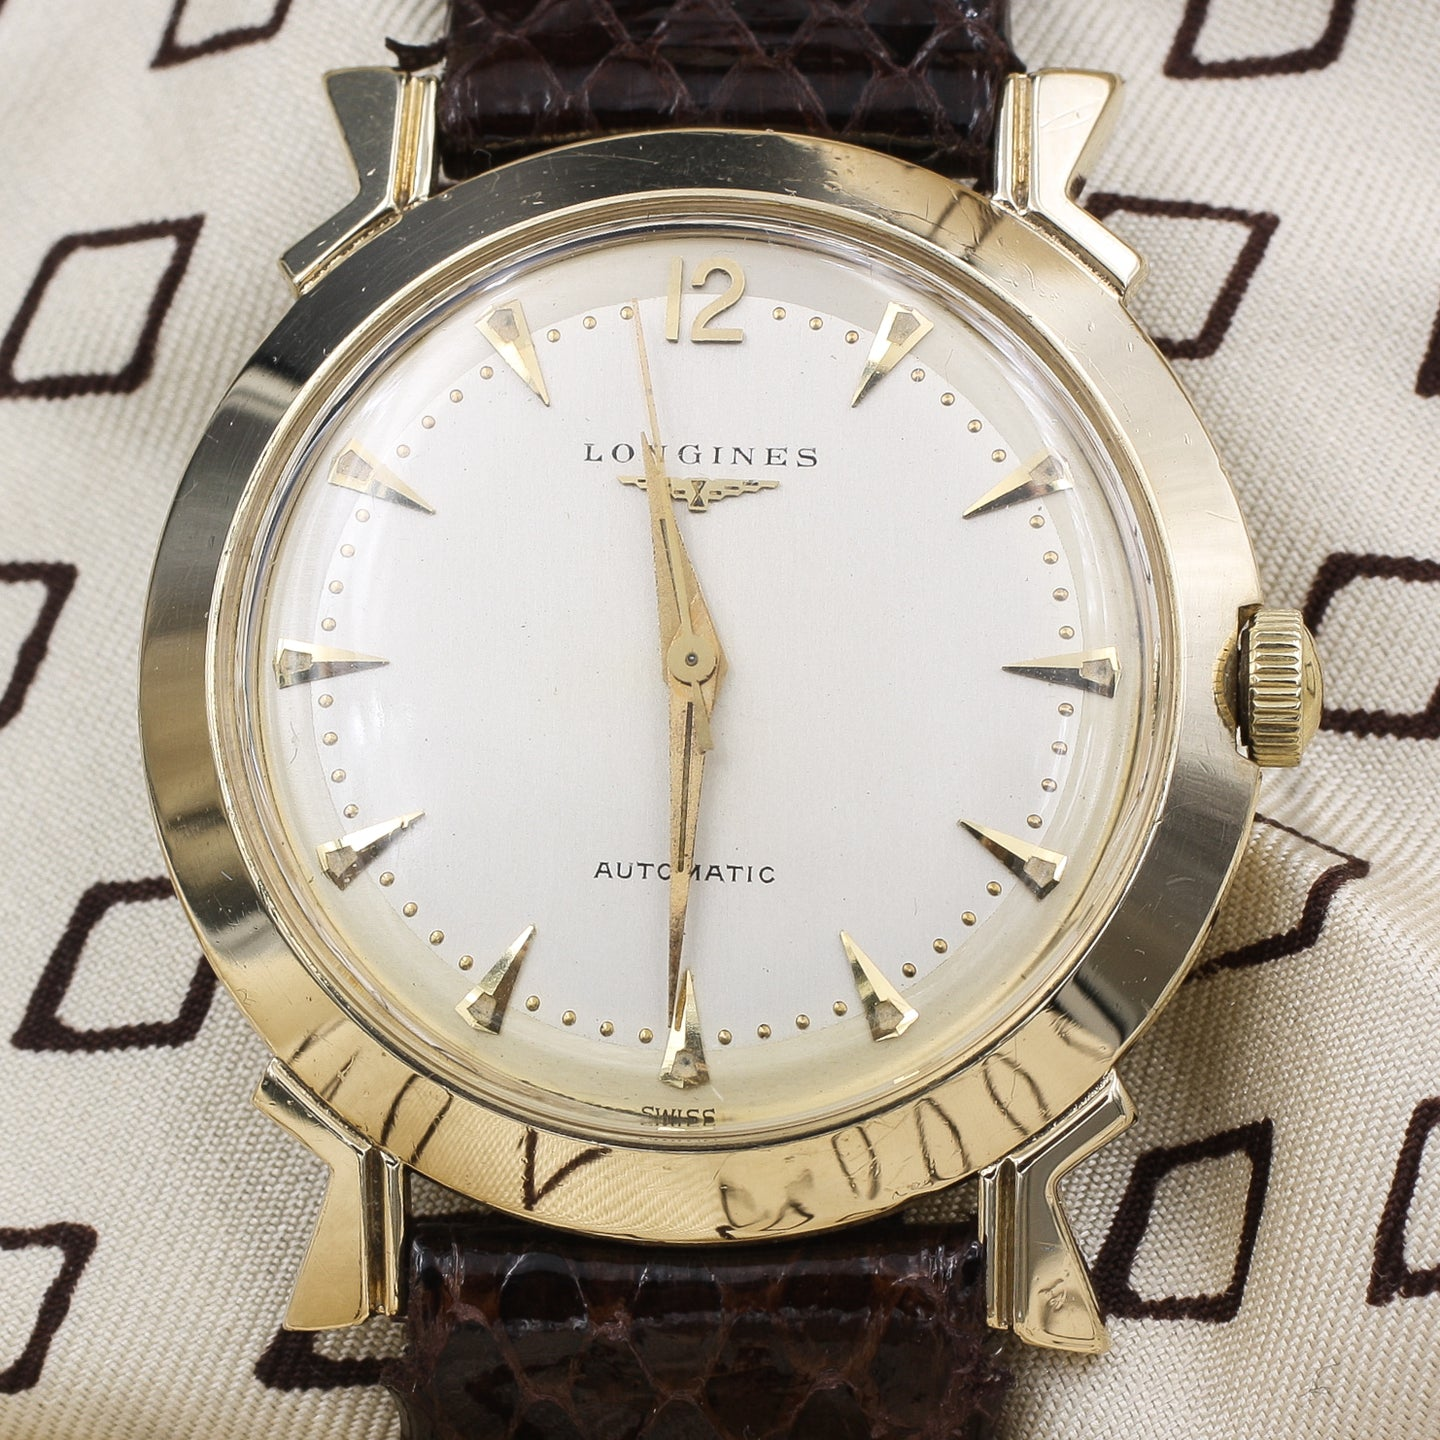 1940s Longines Automatic 14k Watch